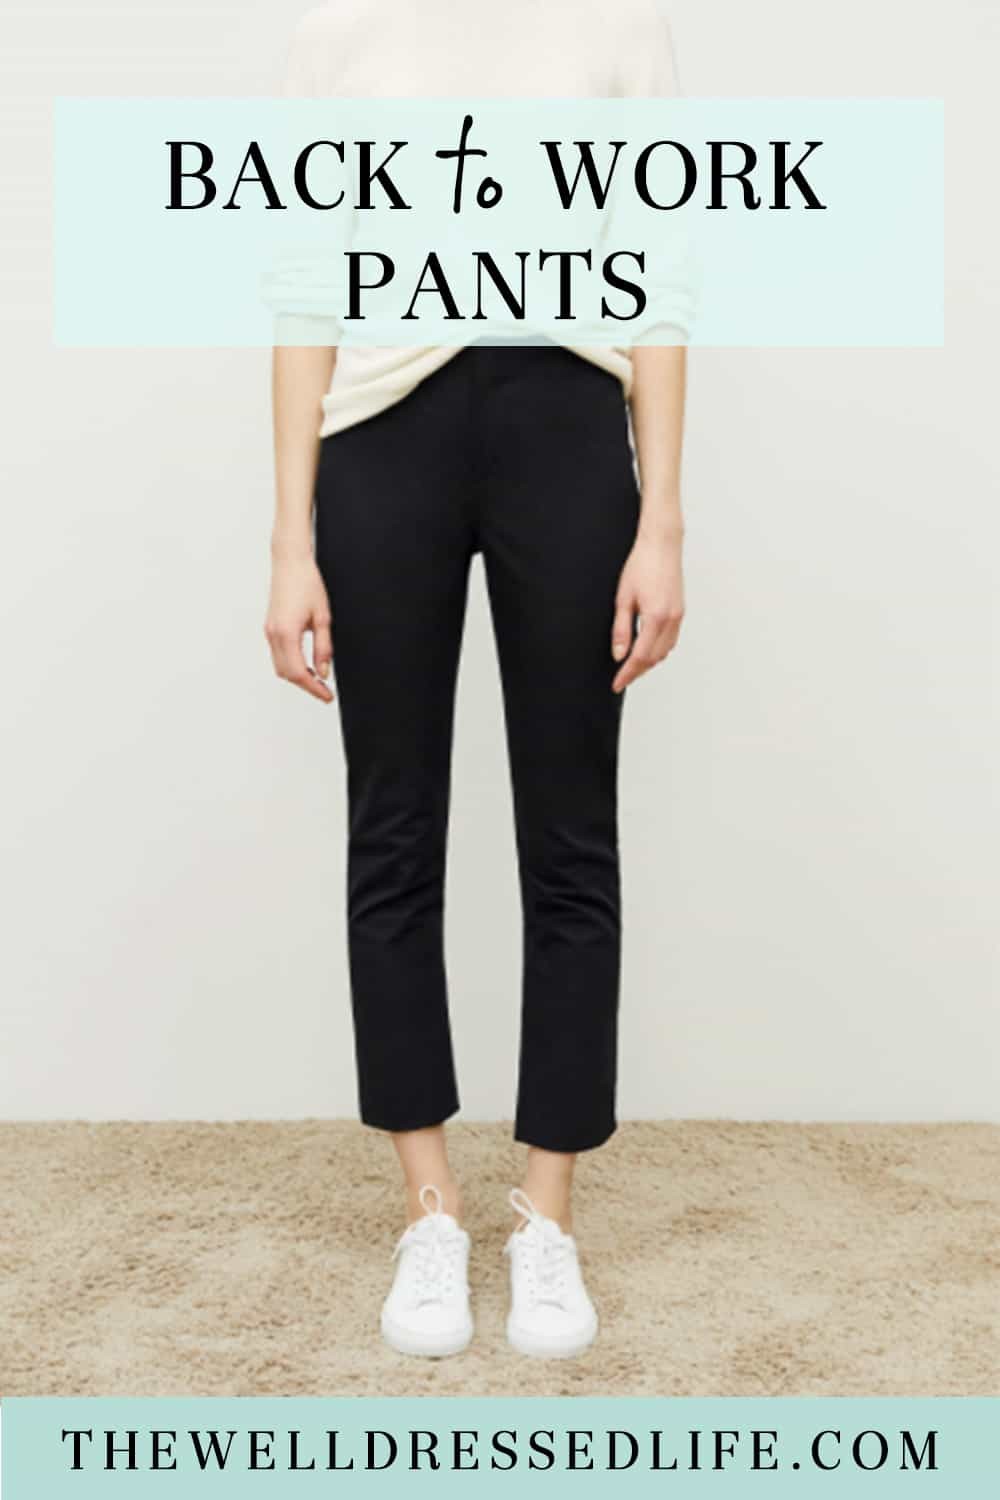 Back to Work Pants